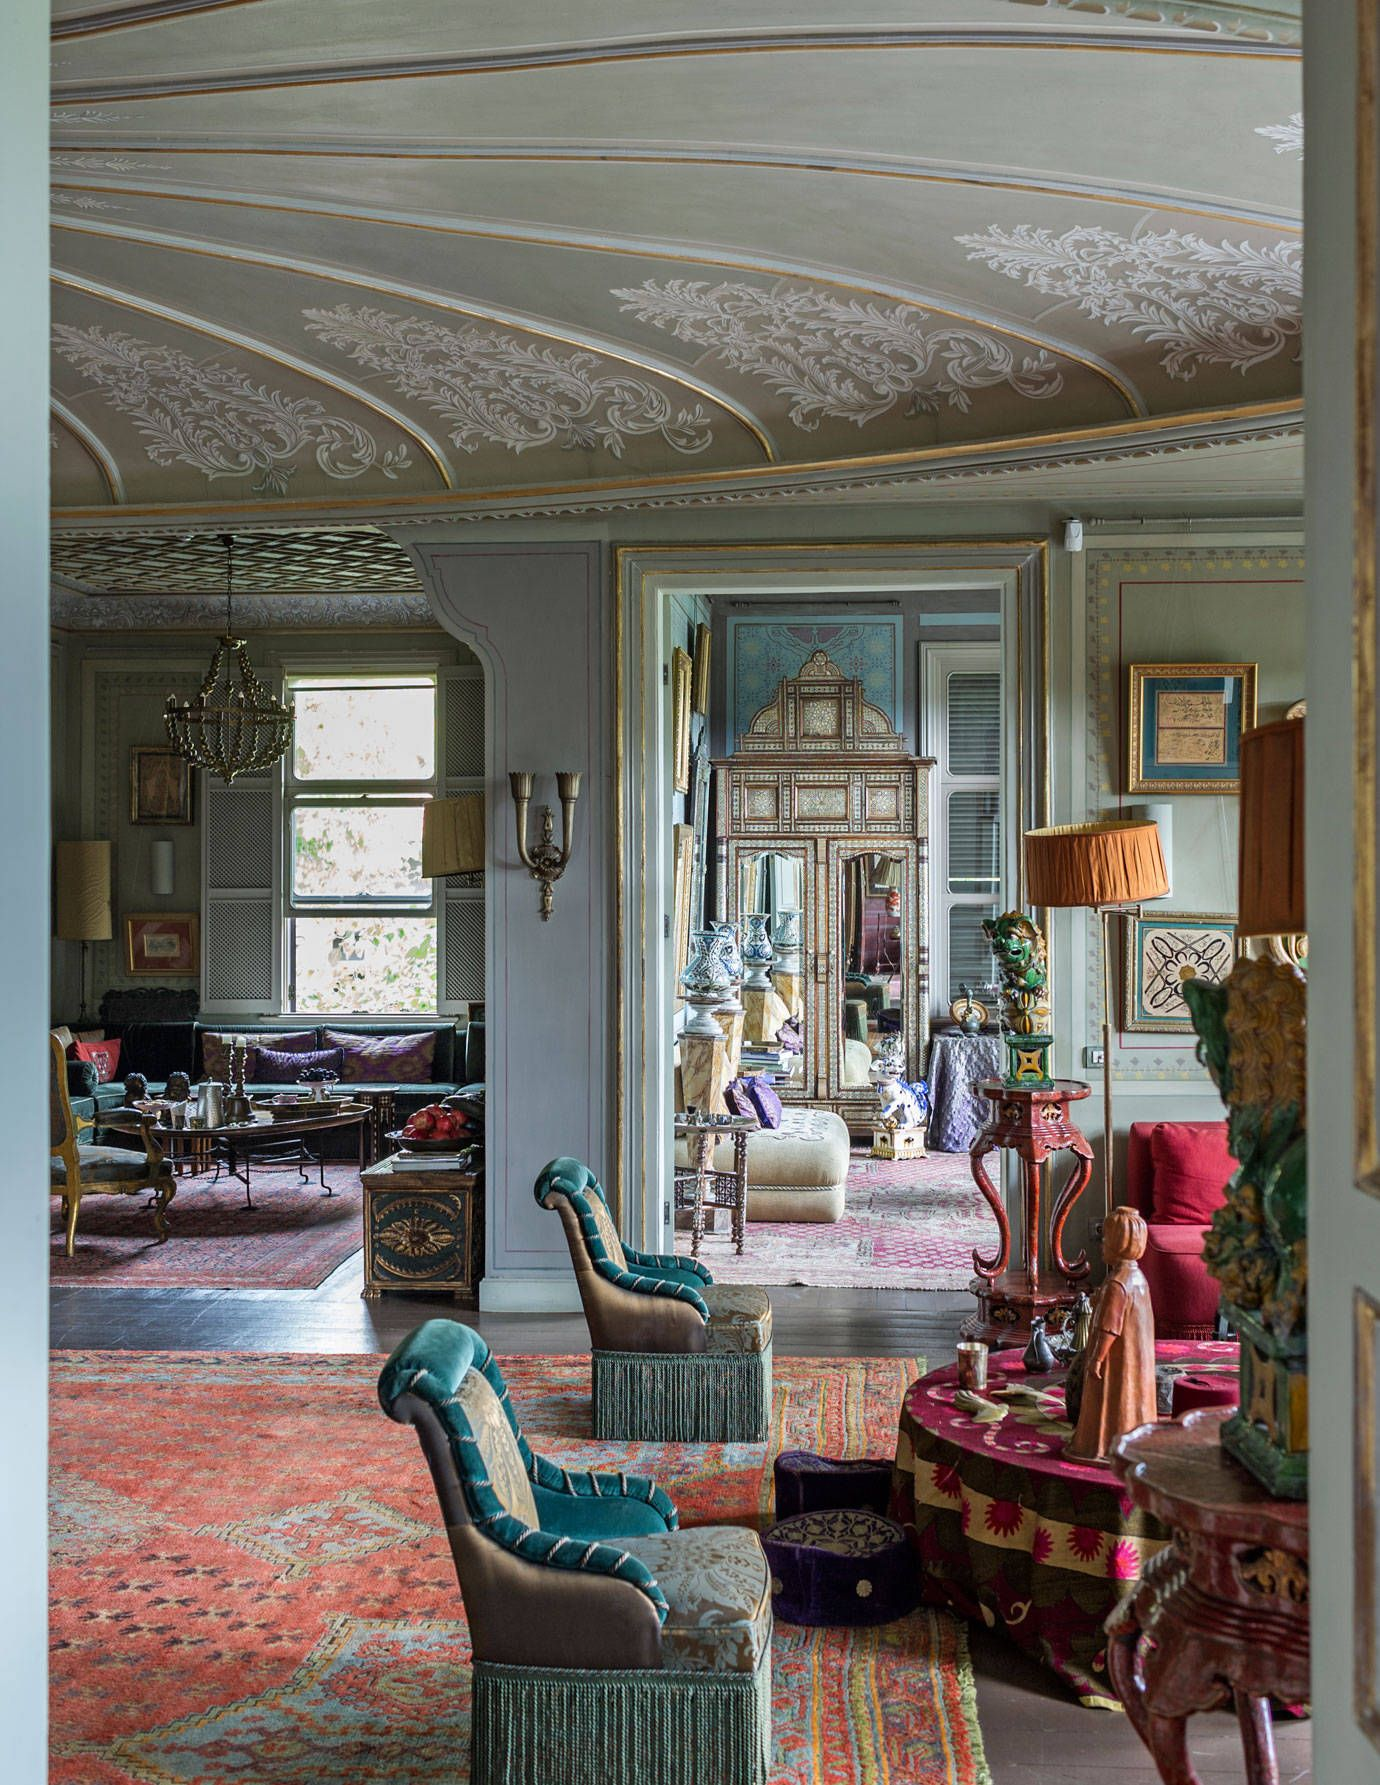 Traditional Home Interior Design: Home Tour: The Traditional Side Of Istanbul